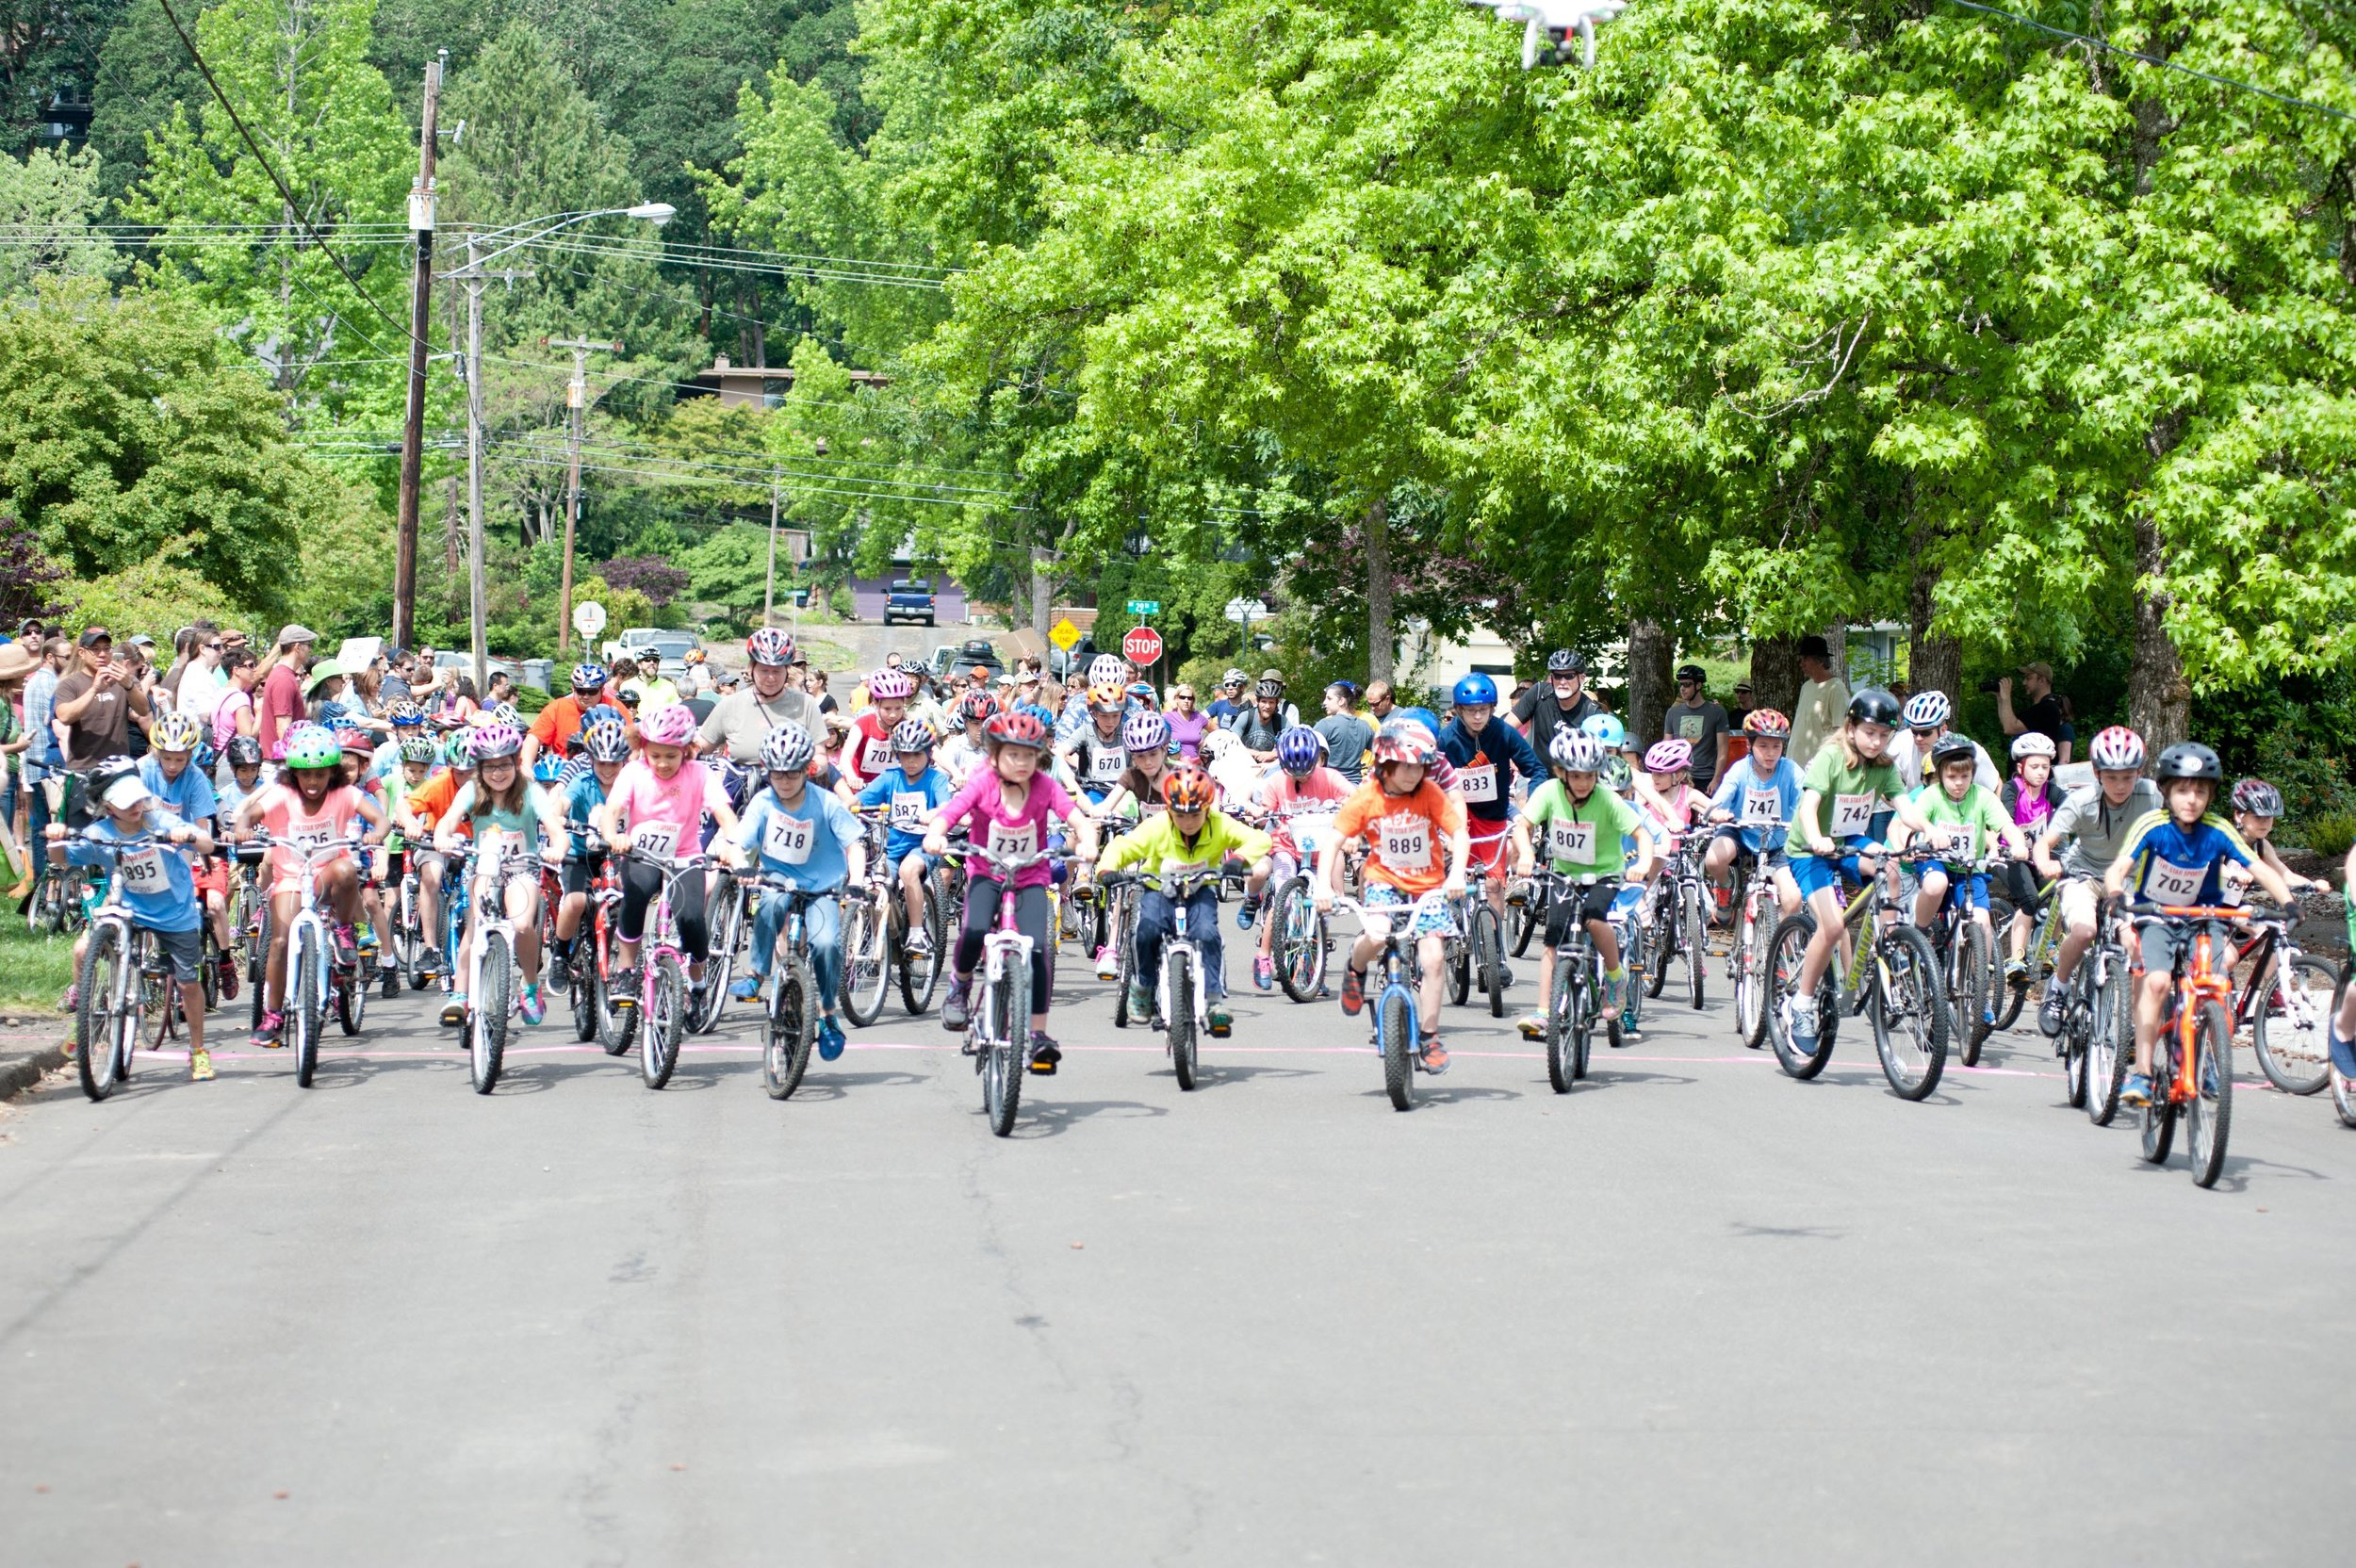 The Starting Line. In 2016, a record 286 kids registered to ride. The Road Ride is open to kids 12 and younger and requires paid registration (scholarships available). The Cycle Fair is free and open to the public.